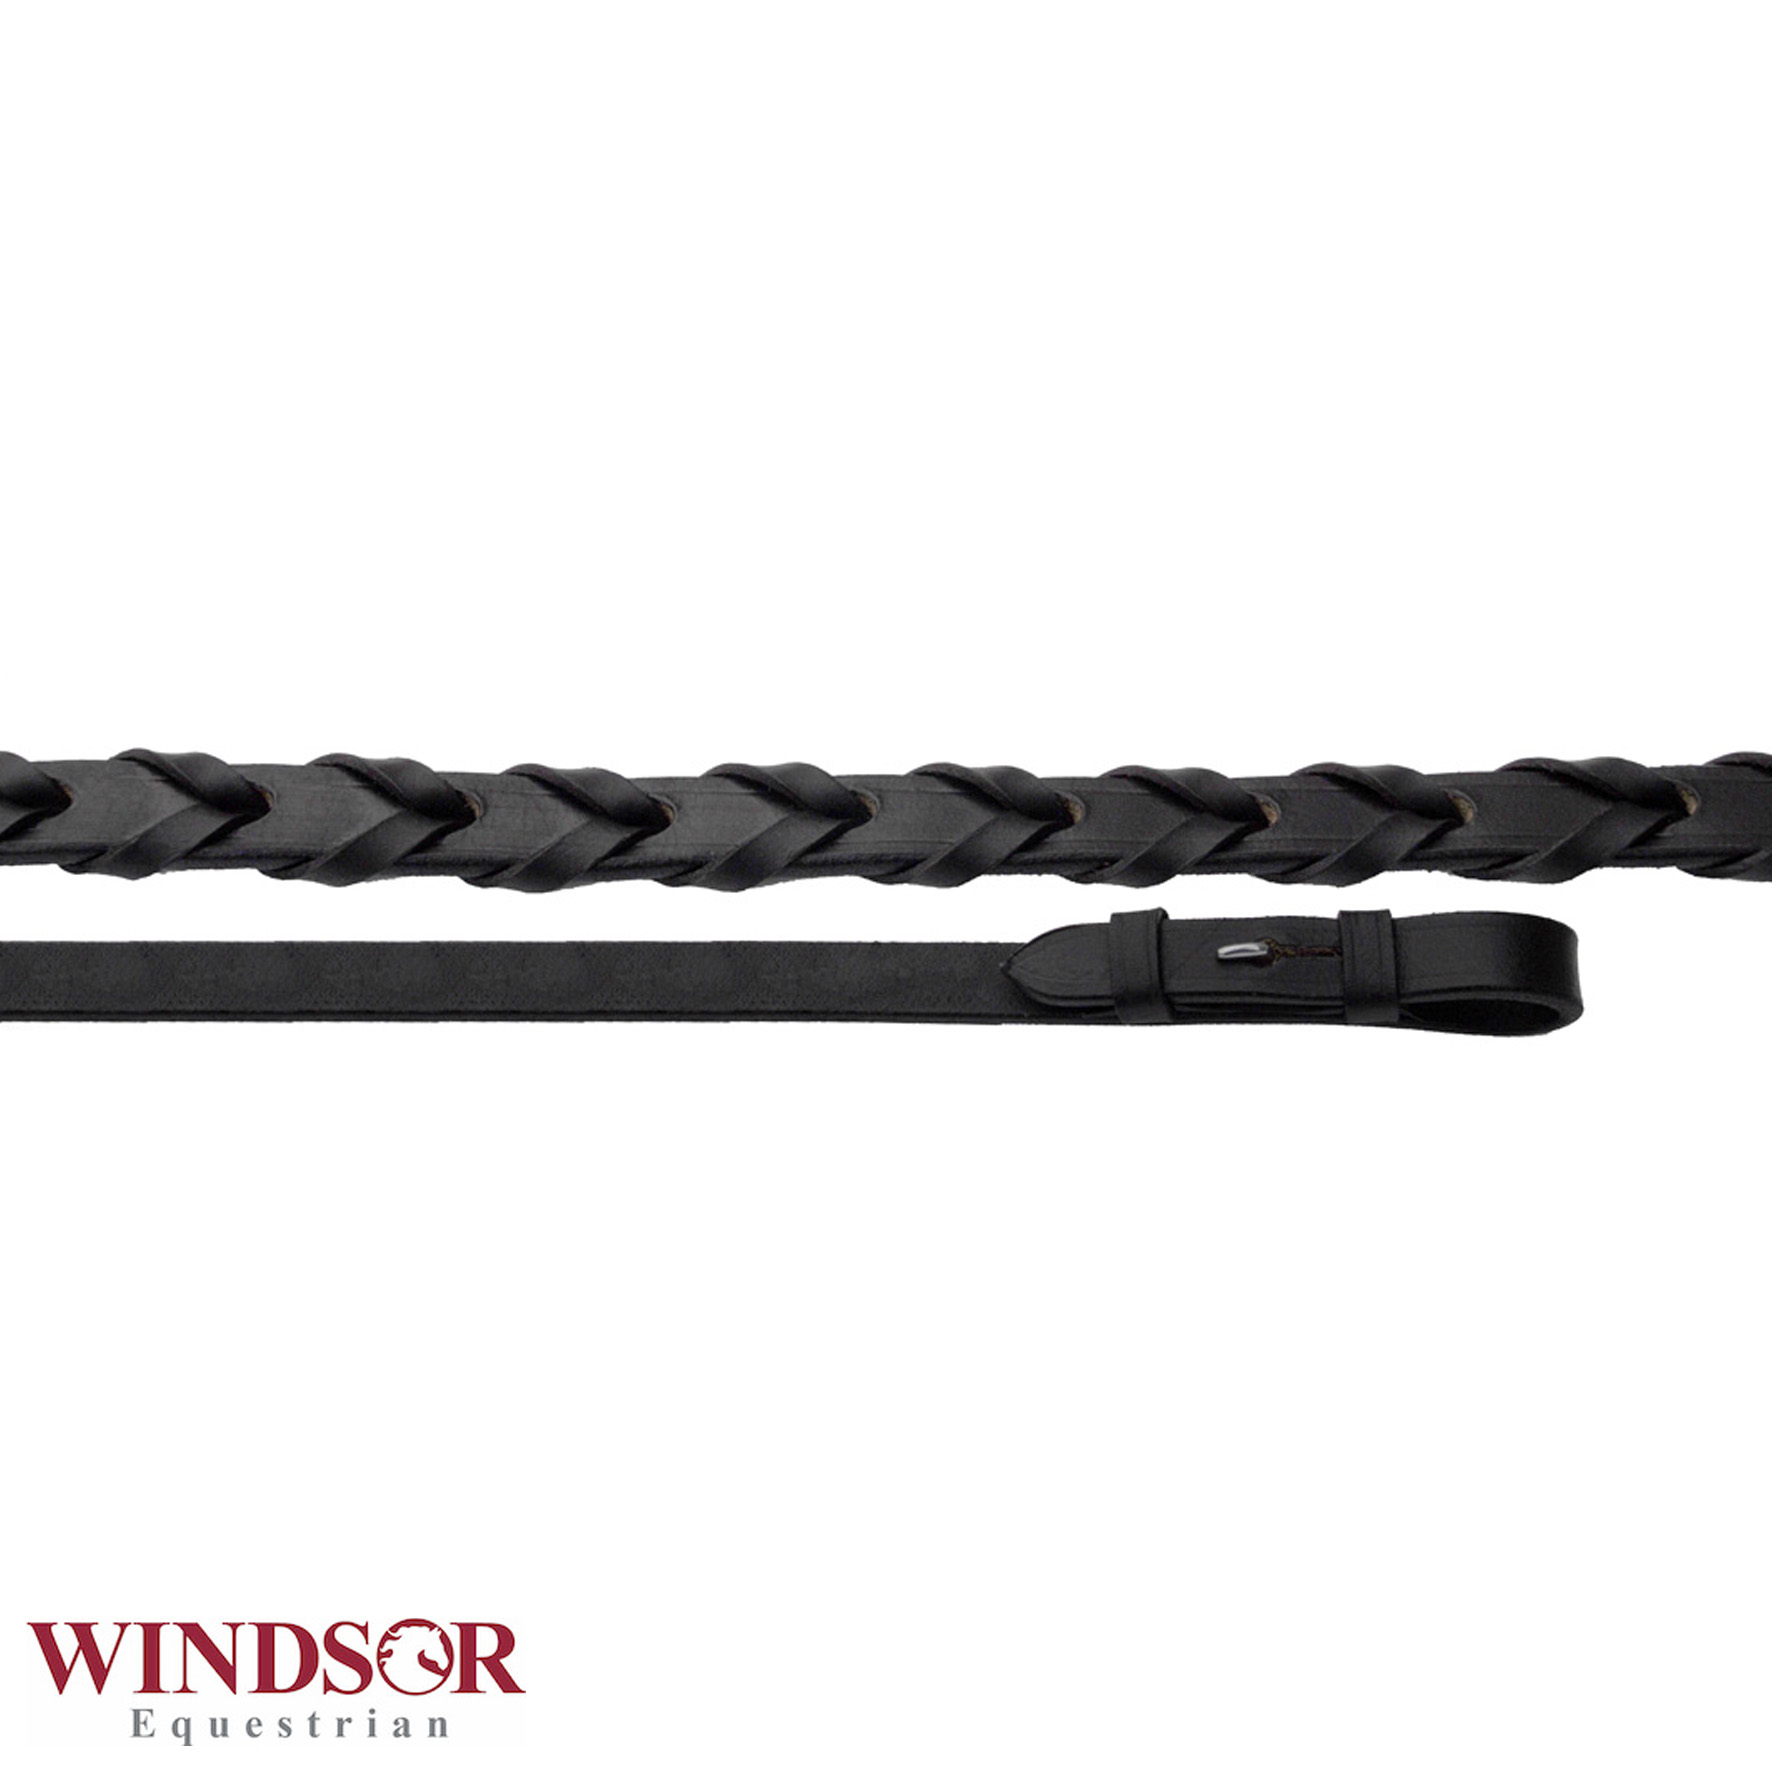 Windsor Equestrian Leather Laced Reins